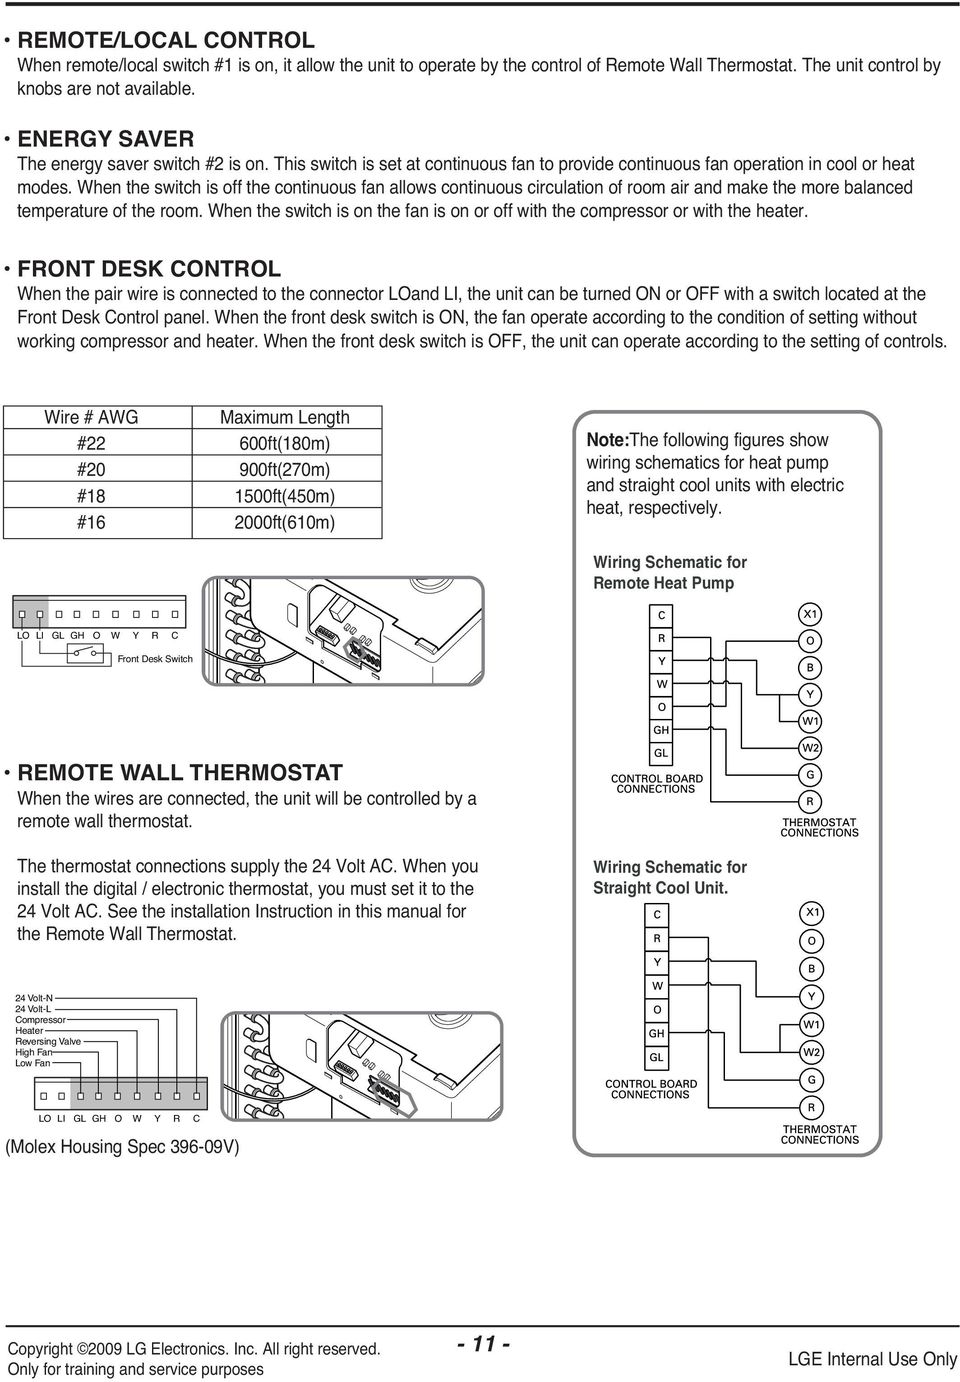 when the switch is off the continuous fan allows continuous circulation of  room air and make